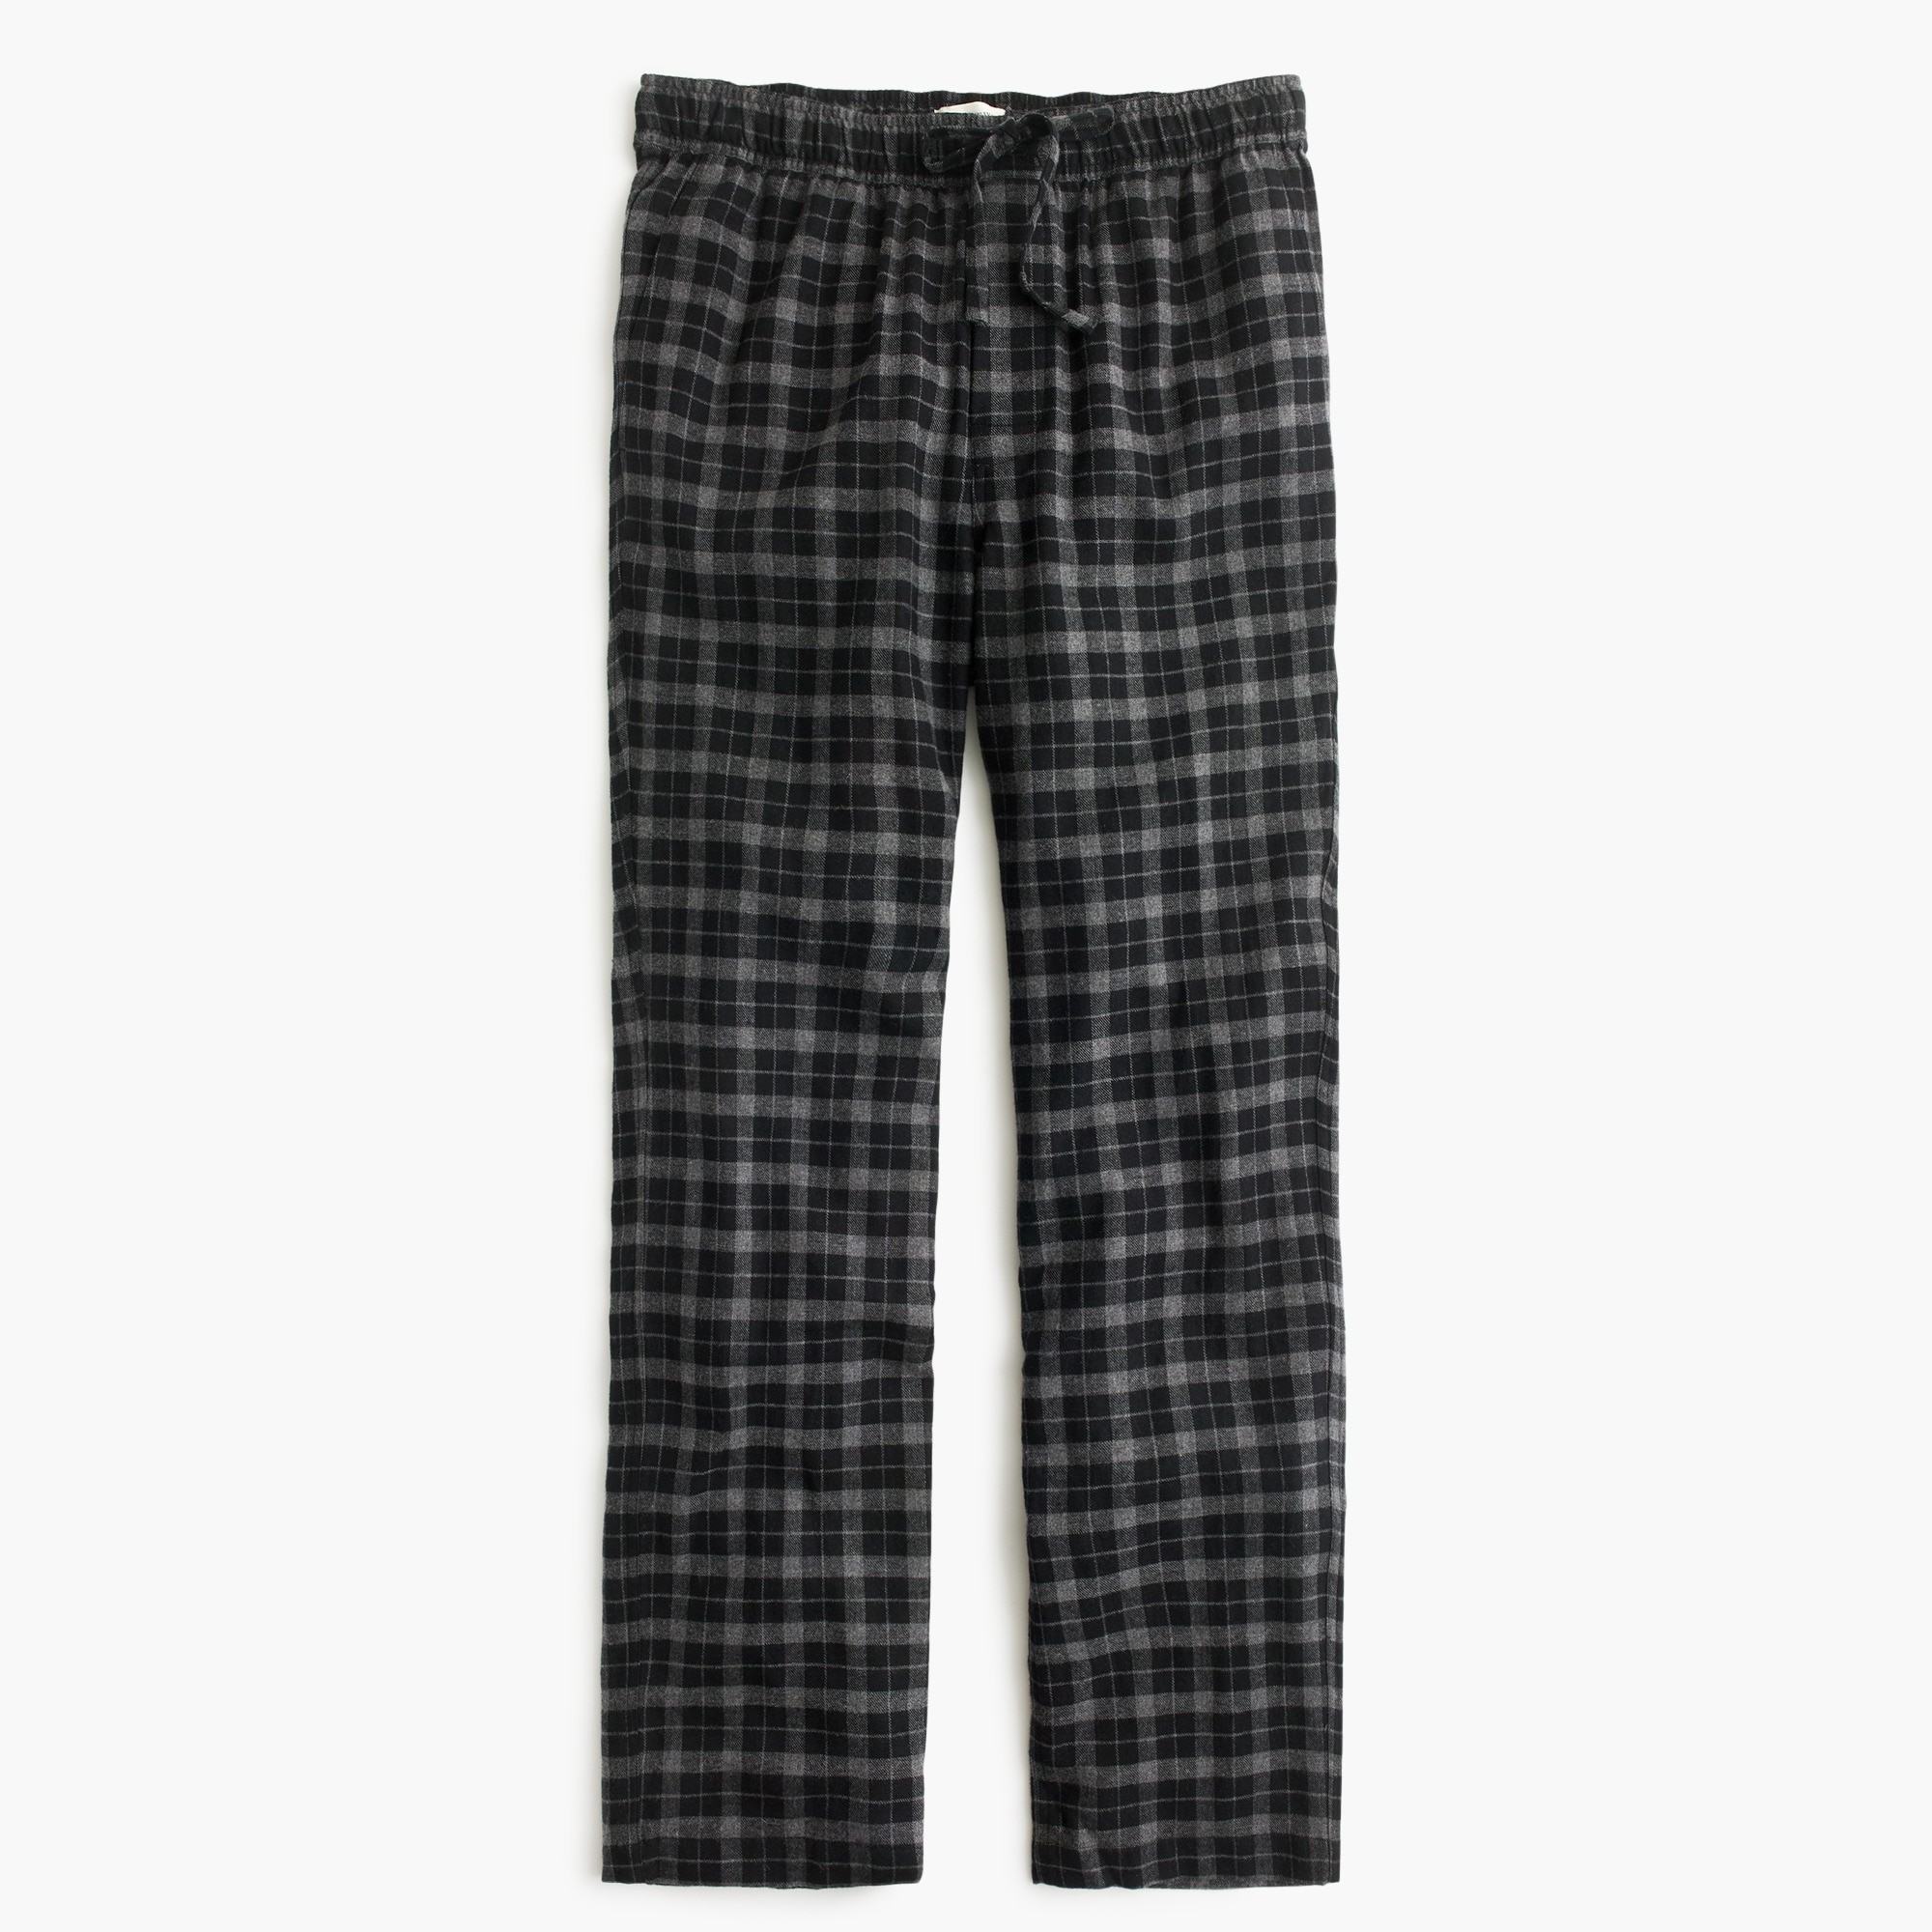 Cotton lounge pant in charcoal plaid